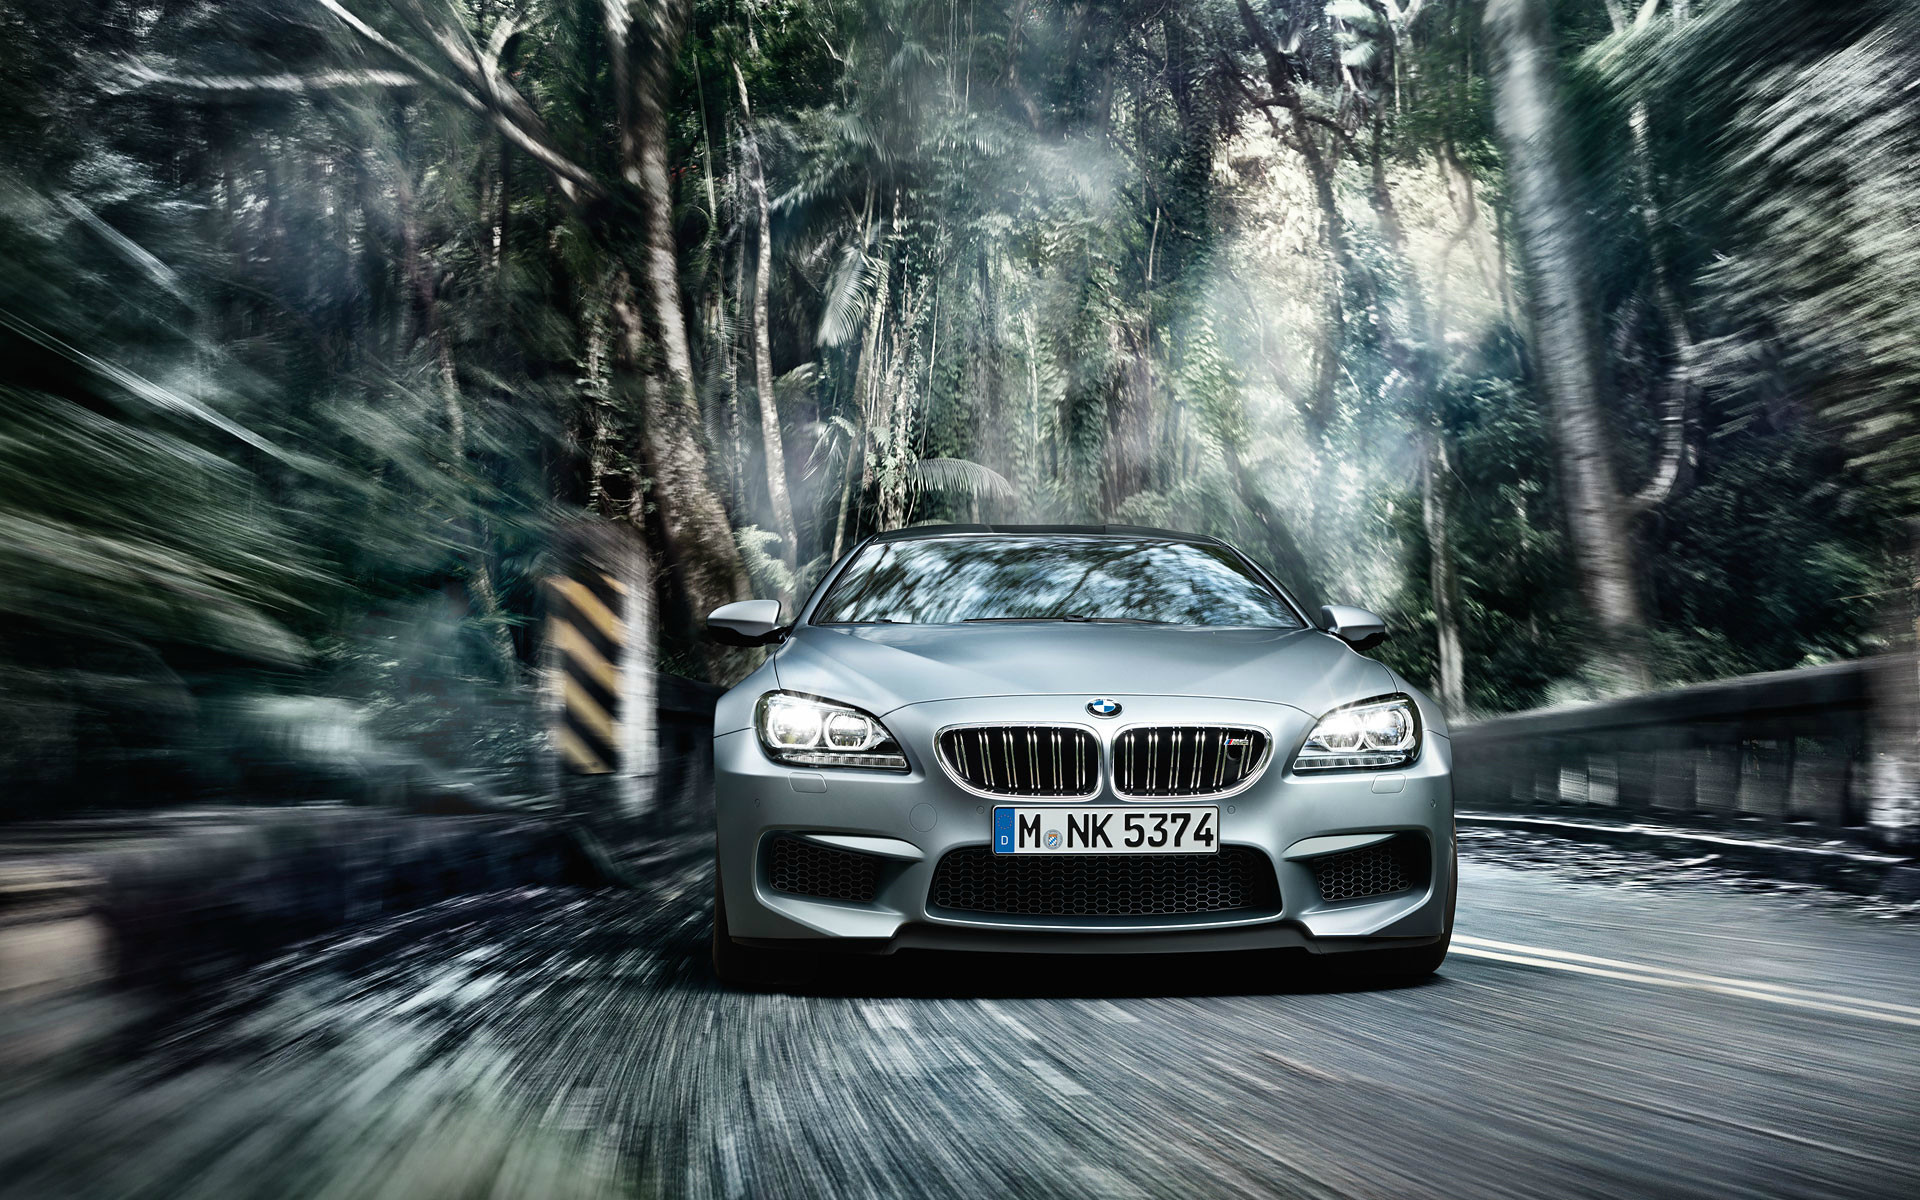 1920x1200 Vehicles   BMW M6 Coupe Wallpaper · Download · 11 ...